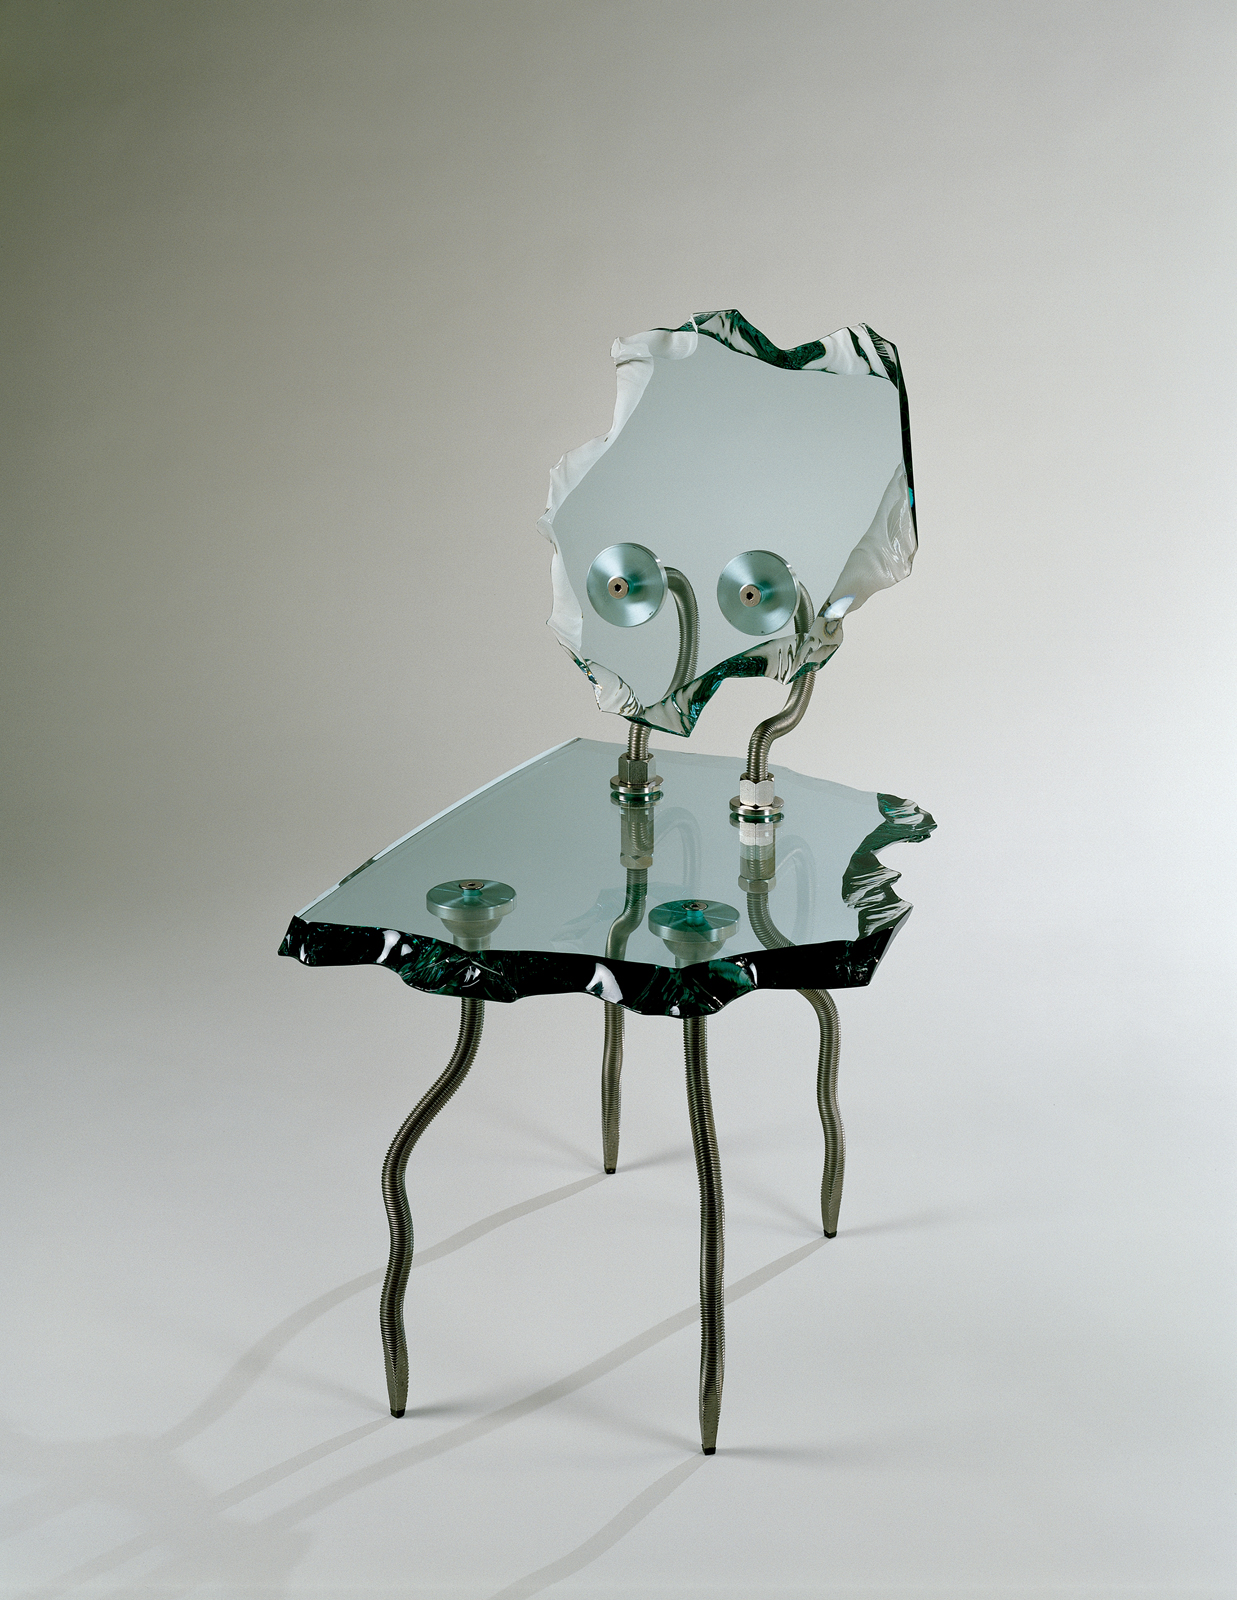 Etruscan Chair, Danny Lane, London, England, U.K., 1992. Purchased with the assistance of Emanuel and Phyllis Lacher and Sarah M. Hasson. 94.2.7.